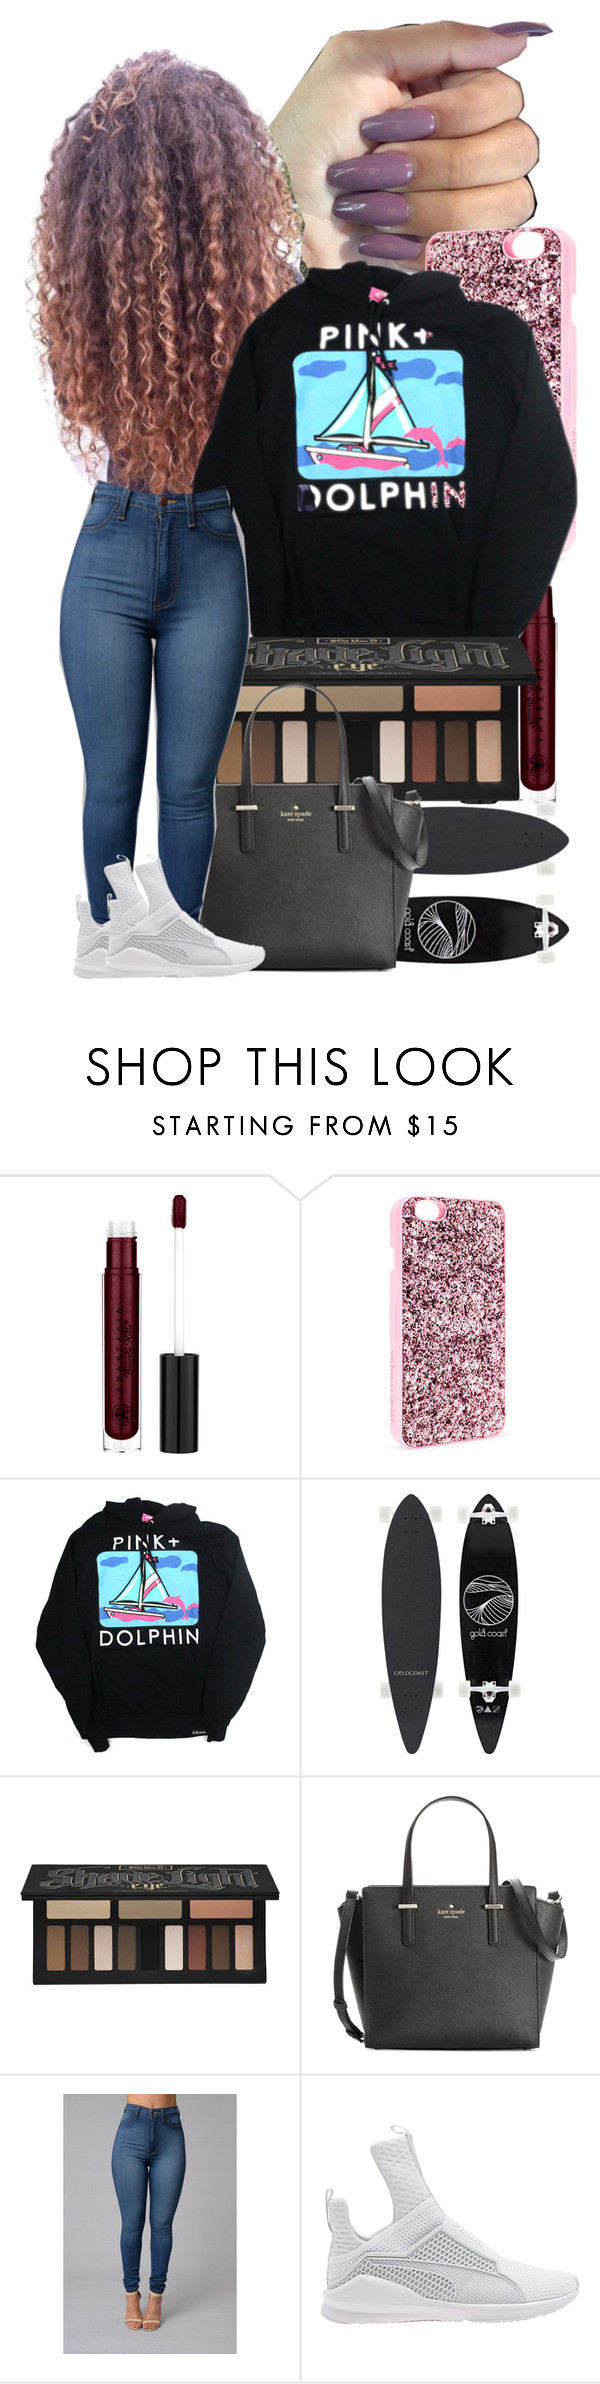 """""""Untitled #48"""" by zariaaxo ❤ liked on Polyvore featuring Victoria's Secret, Kat Von D, Kate Spade and Puma"""